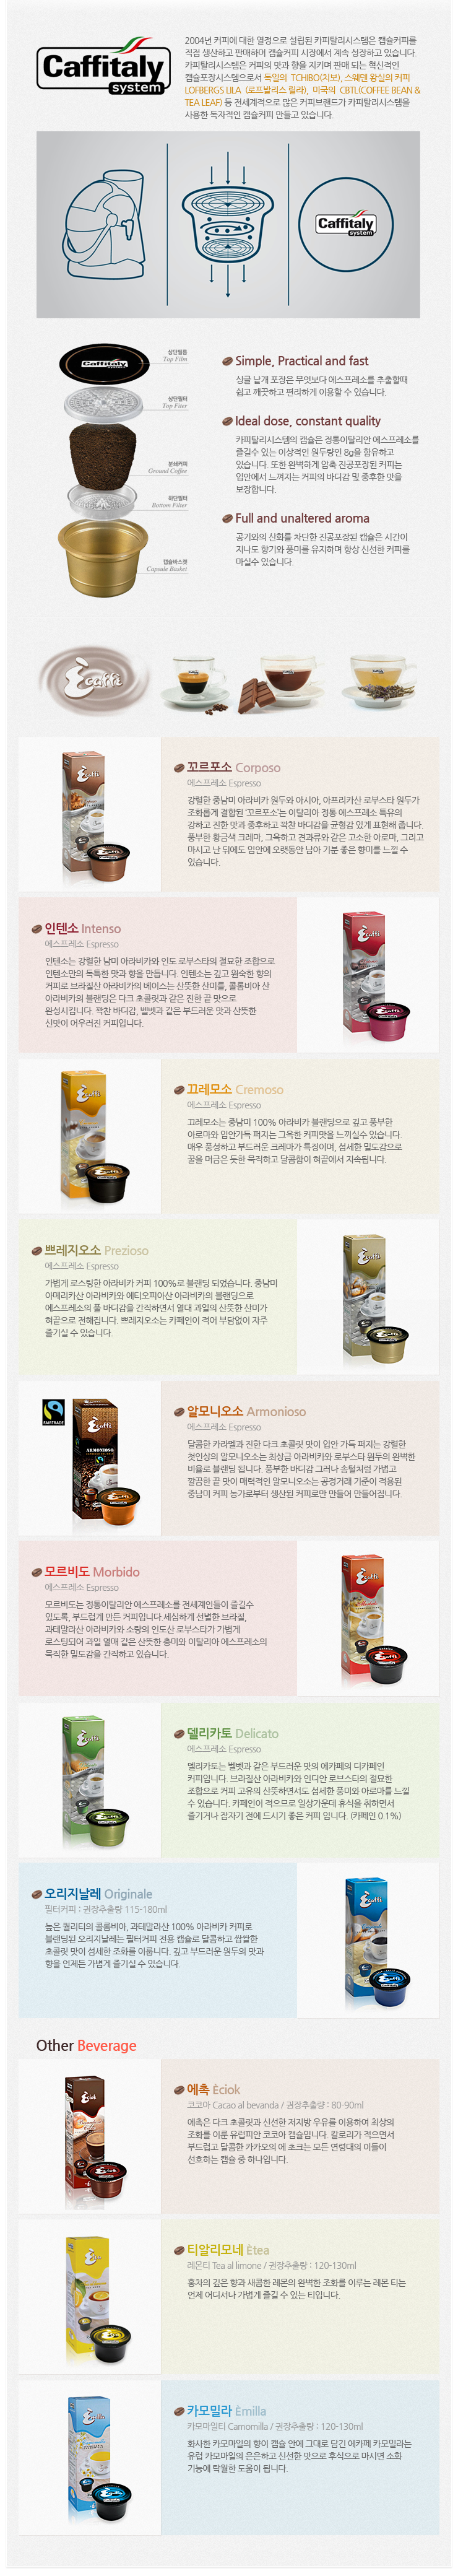 caffitaly system 설명